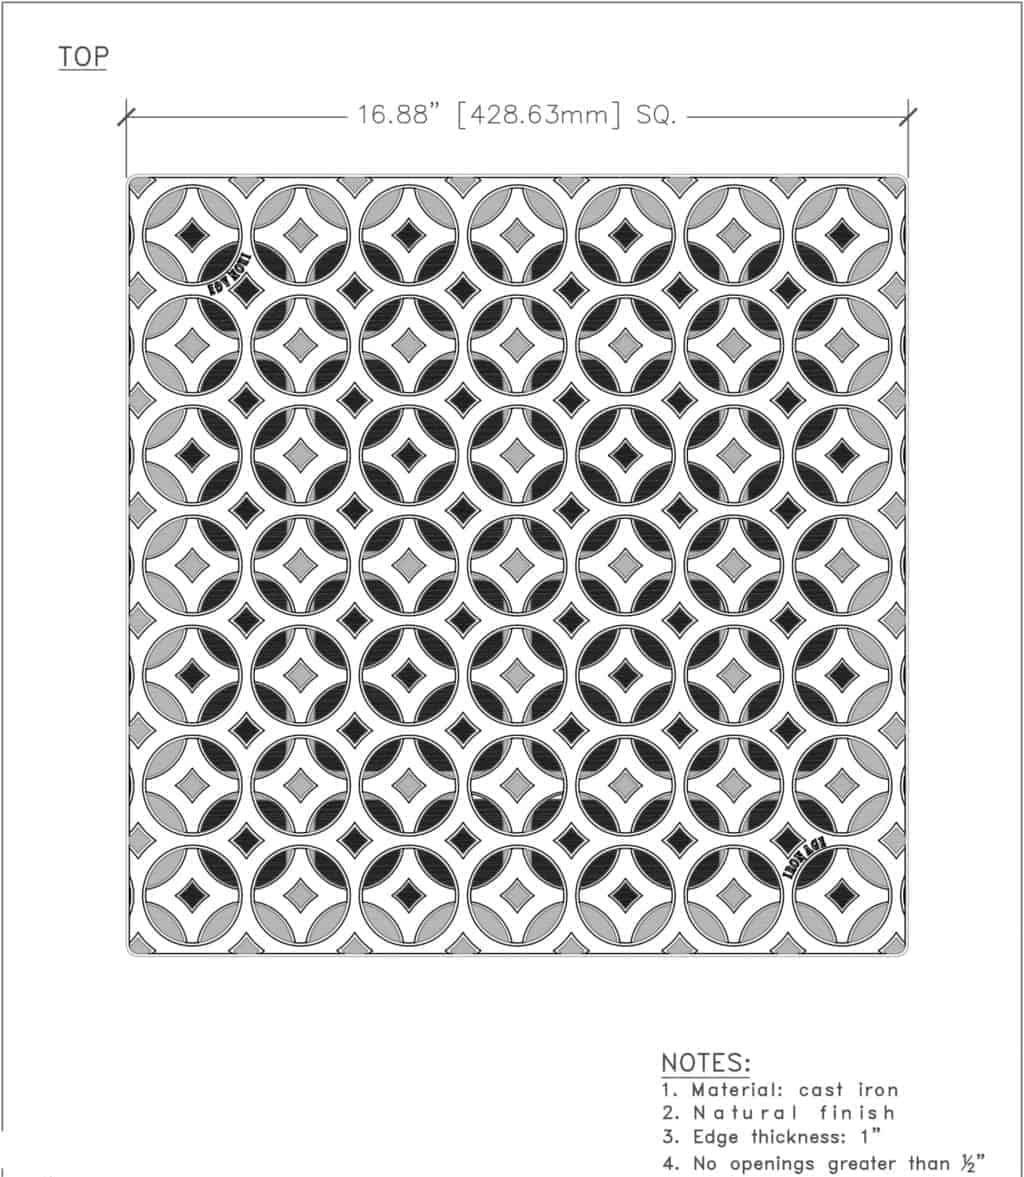 Iron Age 18x18 catch basin grate- Interlaken pattern - cut sheet